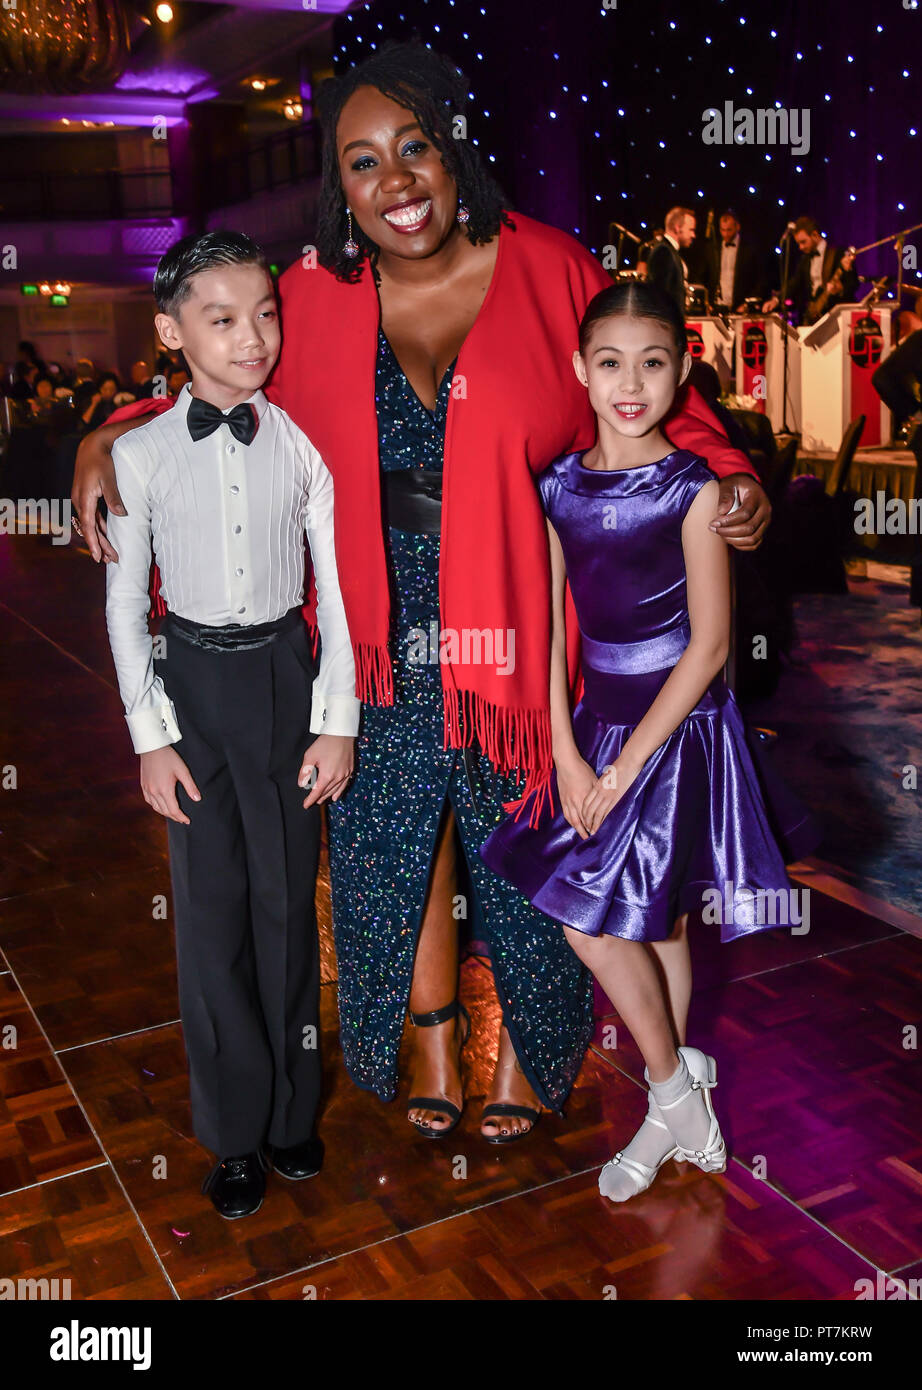 London, UK. 7th Oct 2018. Chizzy Akudolu and dances  at the Paul Killick - Killick Royale Championships 2018 at The Grosvenor House Hotel, London, UK. 7 October 2018. Credit: Picture Capital/Alamy Live News Stock Photo